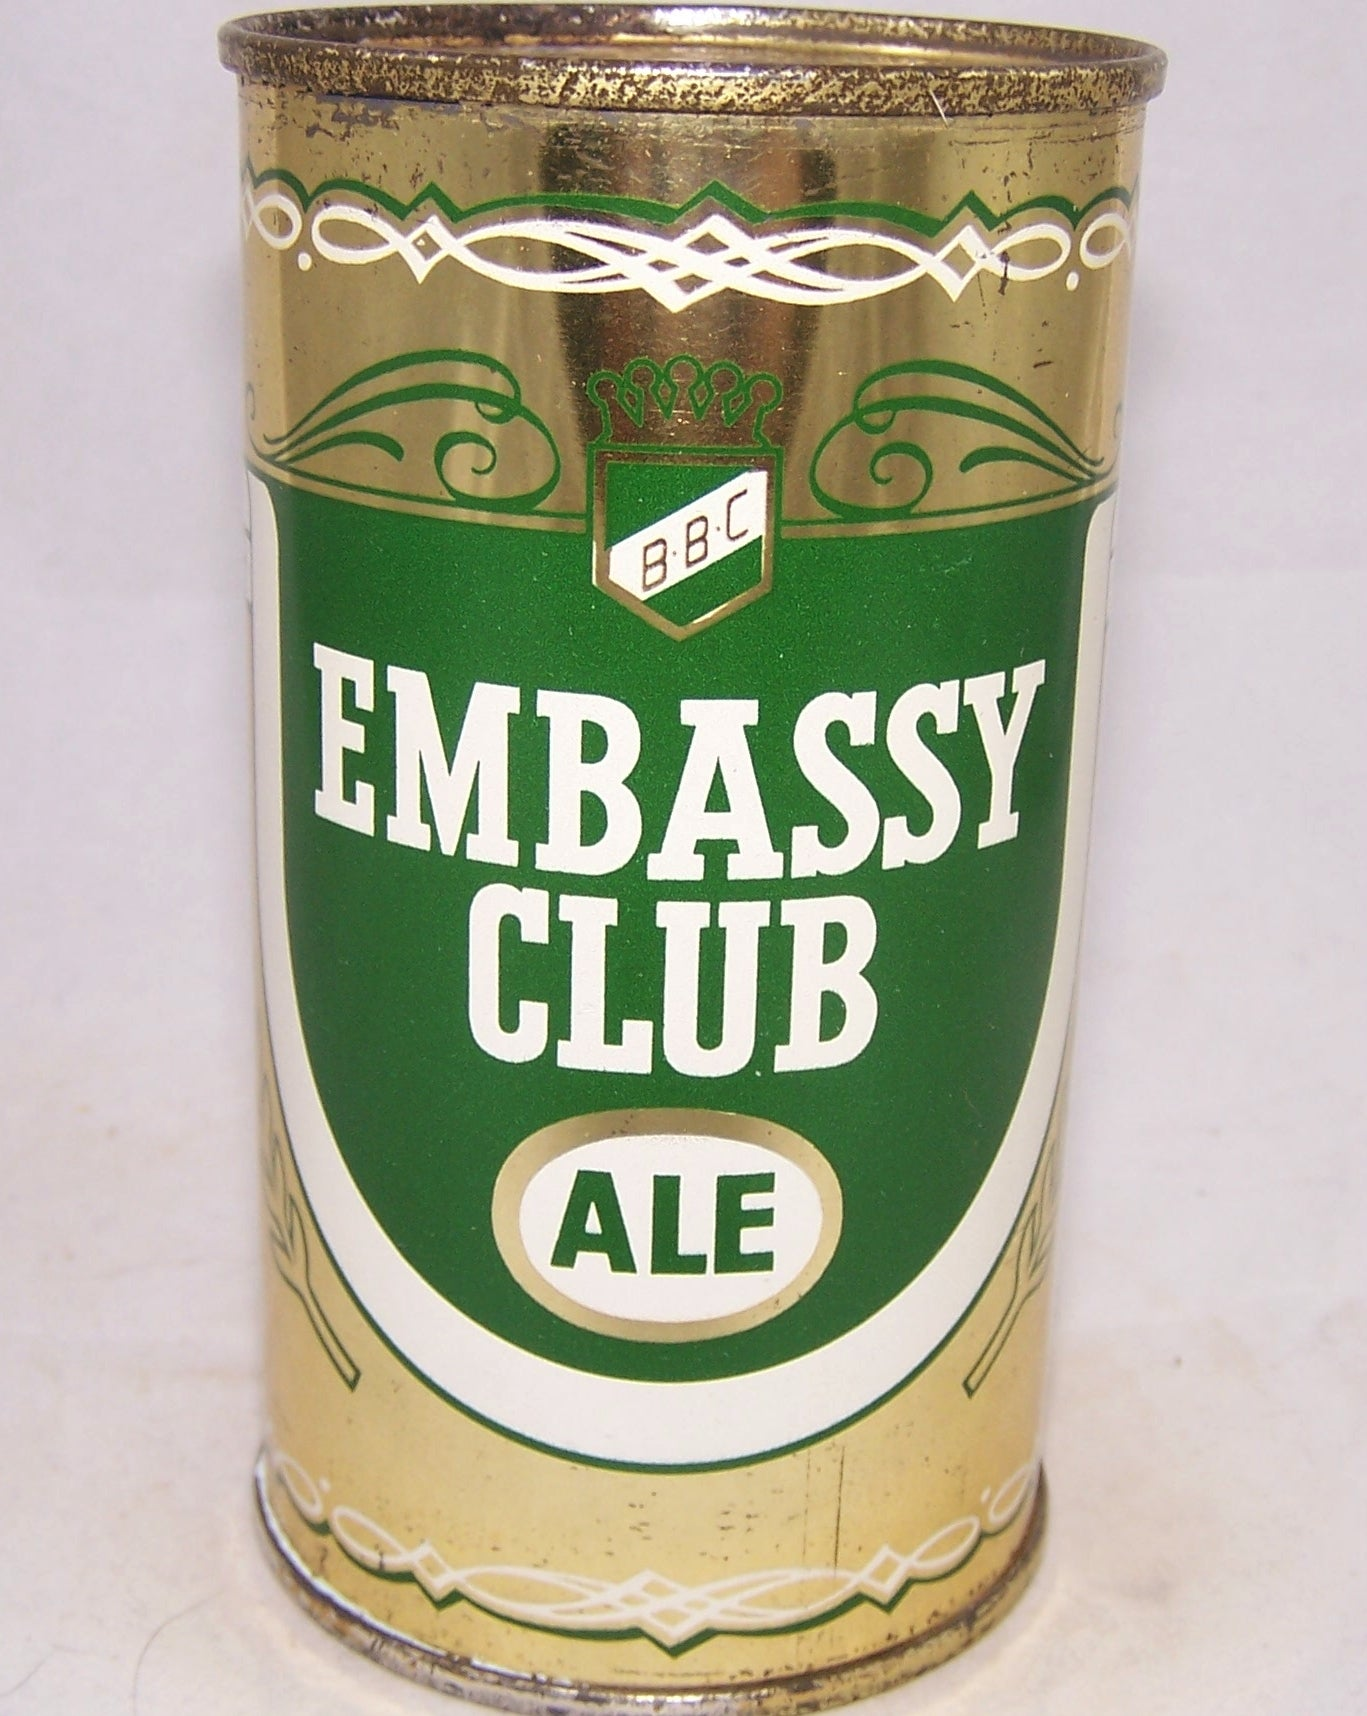 Embassy Club Ale, USBC 59-30, Grade 1- Sold on 02/15/18